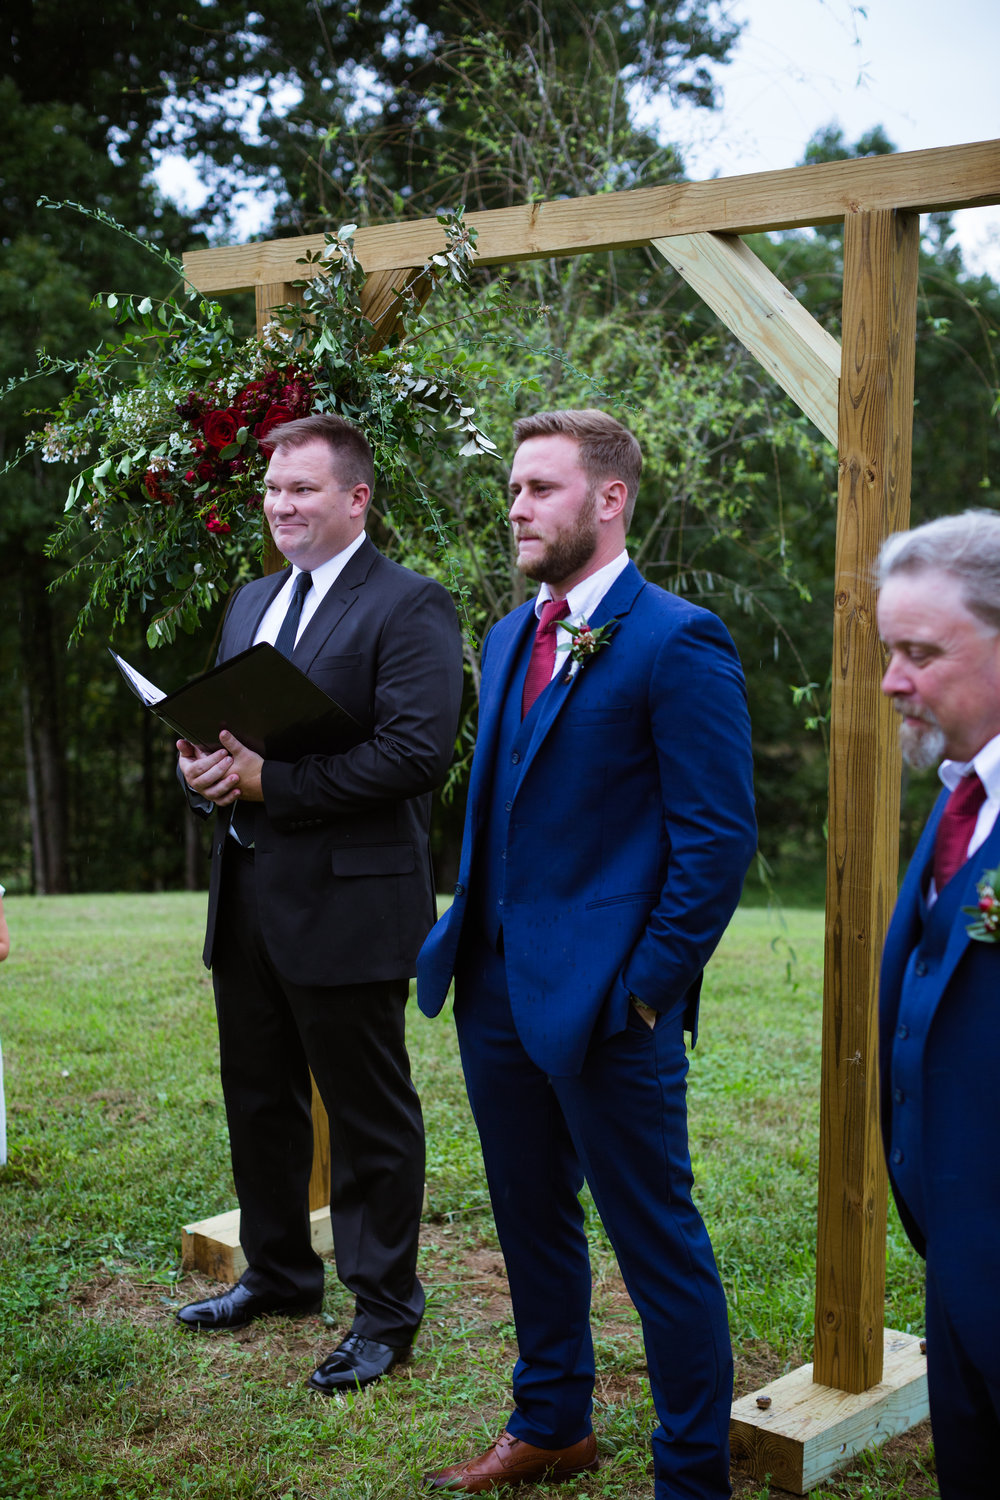 Kramer Wedding - Ceremony-8.jpg